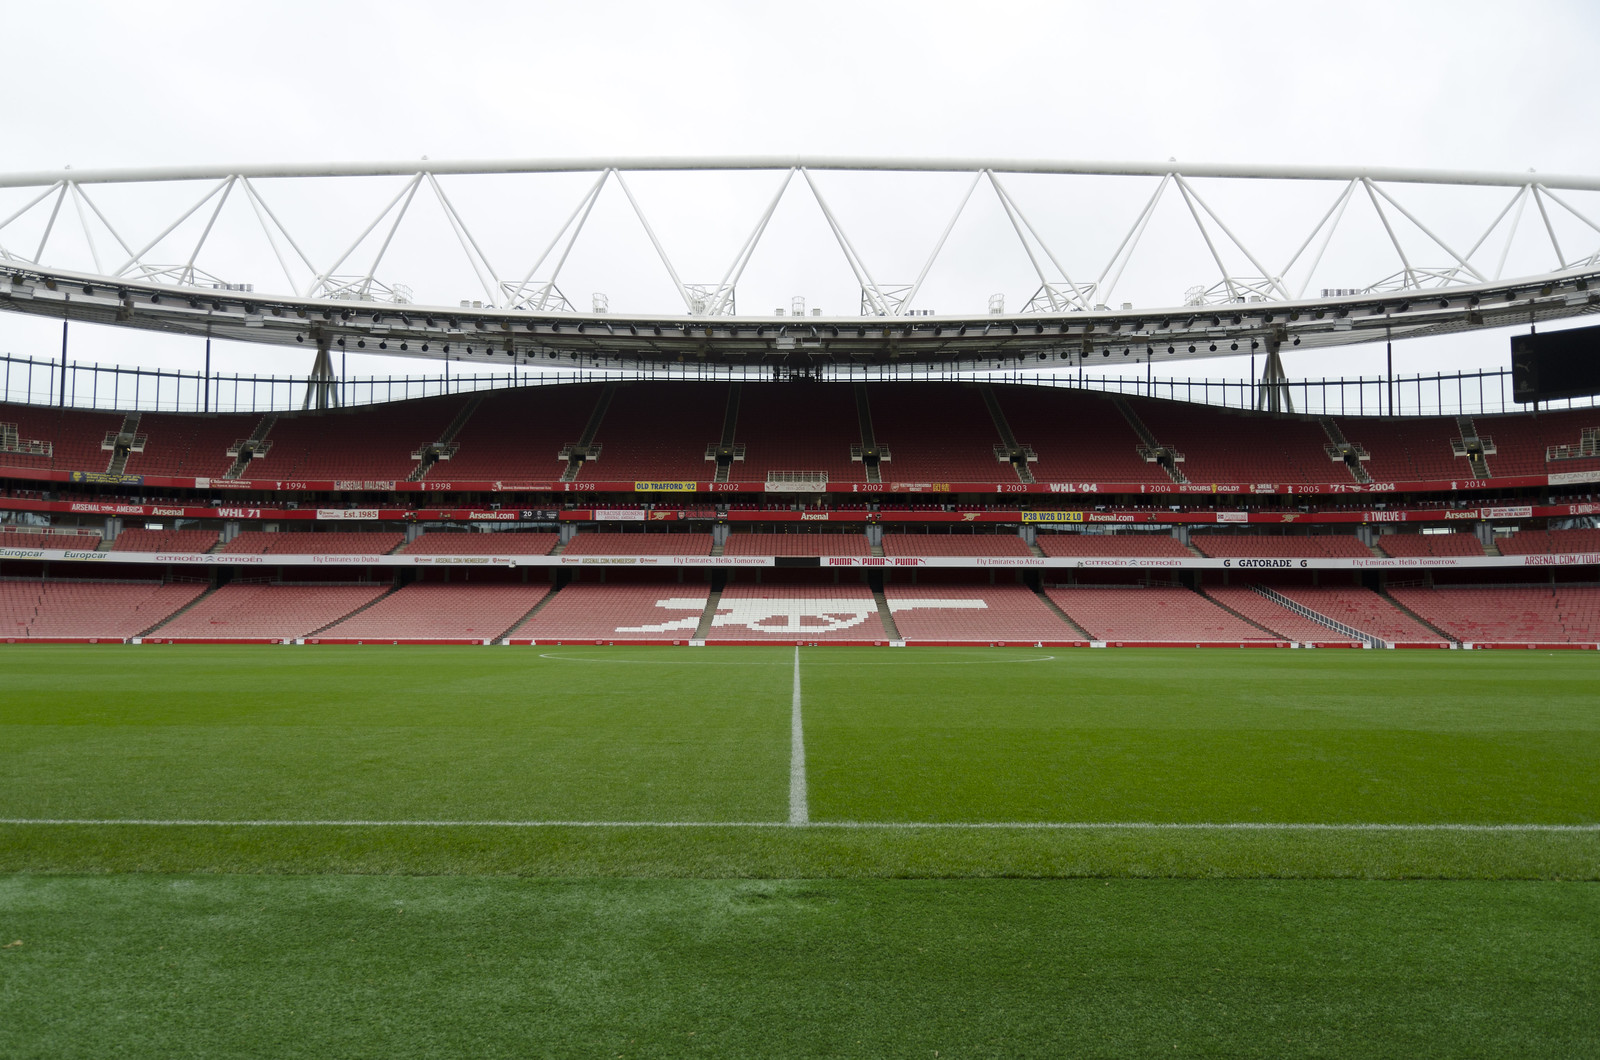 Emirates Stadium - London